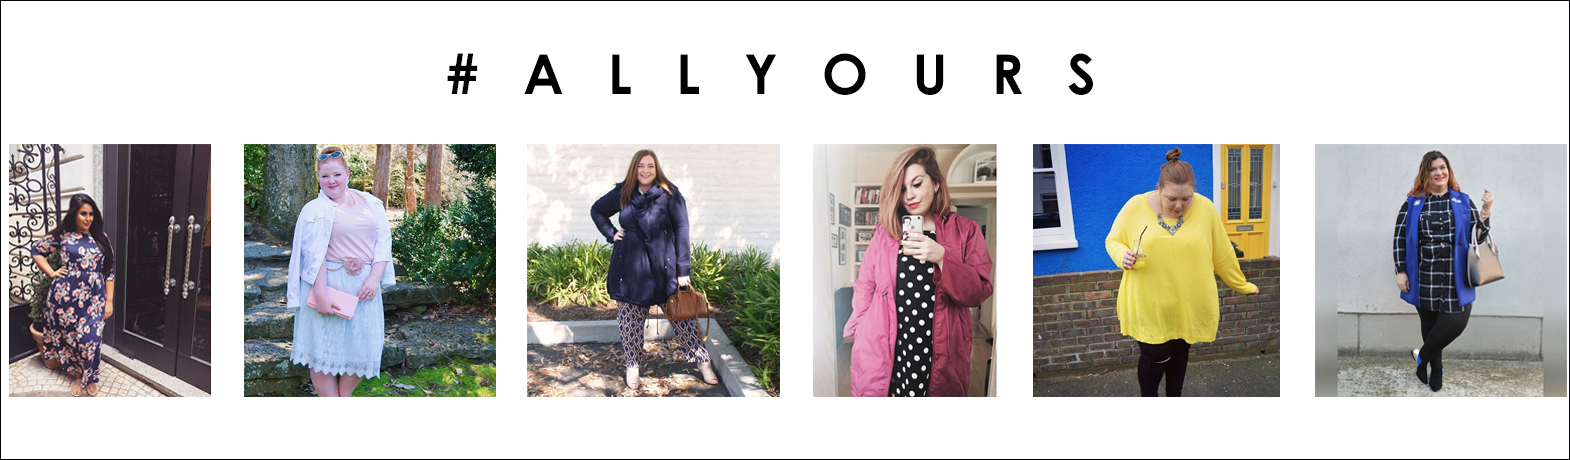 Share Your Picture On Our Shopable Gallary #AllYours >